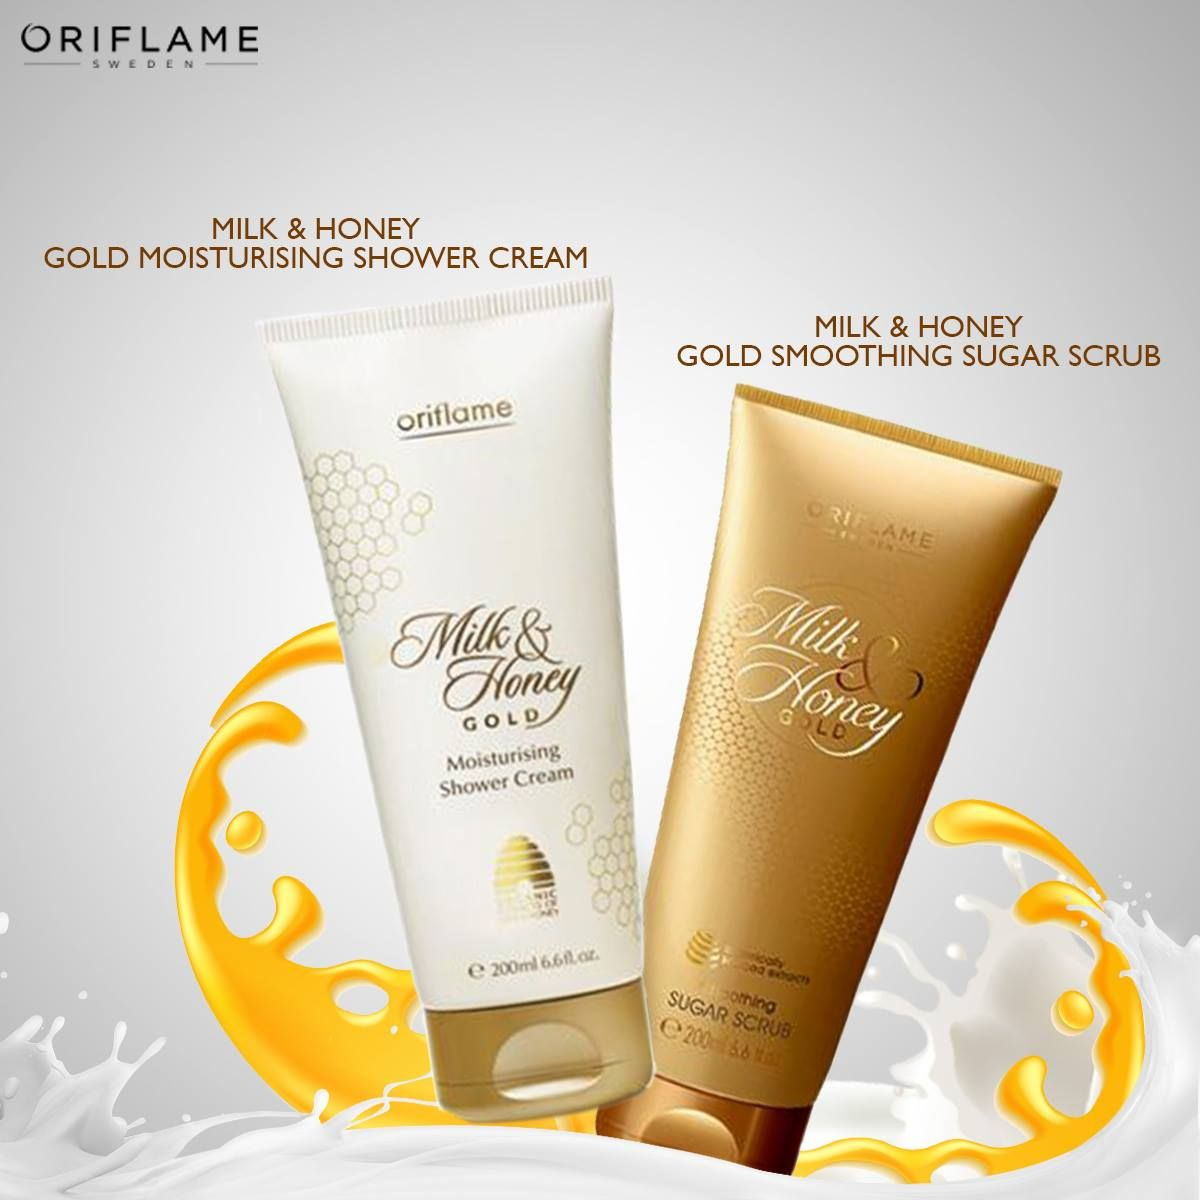 Cleanse Exfoliate And Smoothen Your Skin Try Oriflames Milk Marina Body Scrub 200ml Honey Gold Moisturising Shower Cream Smoothing Sugar For Best Natural Nourishment